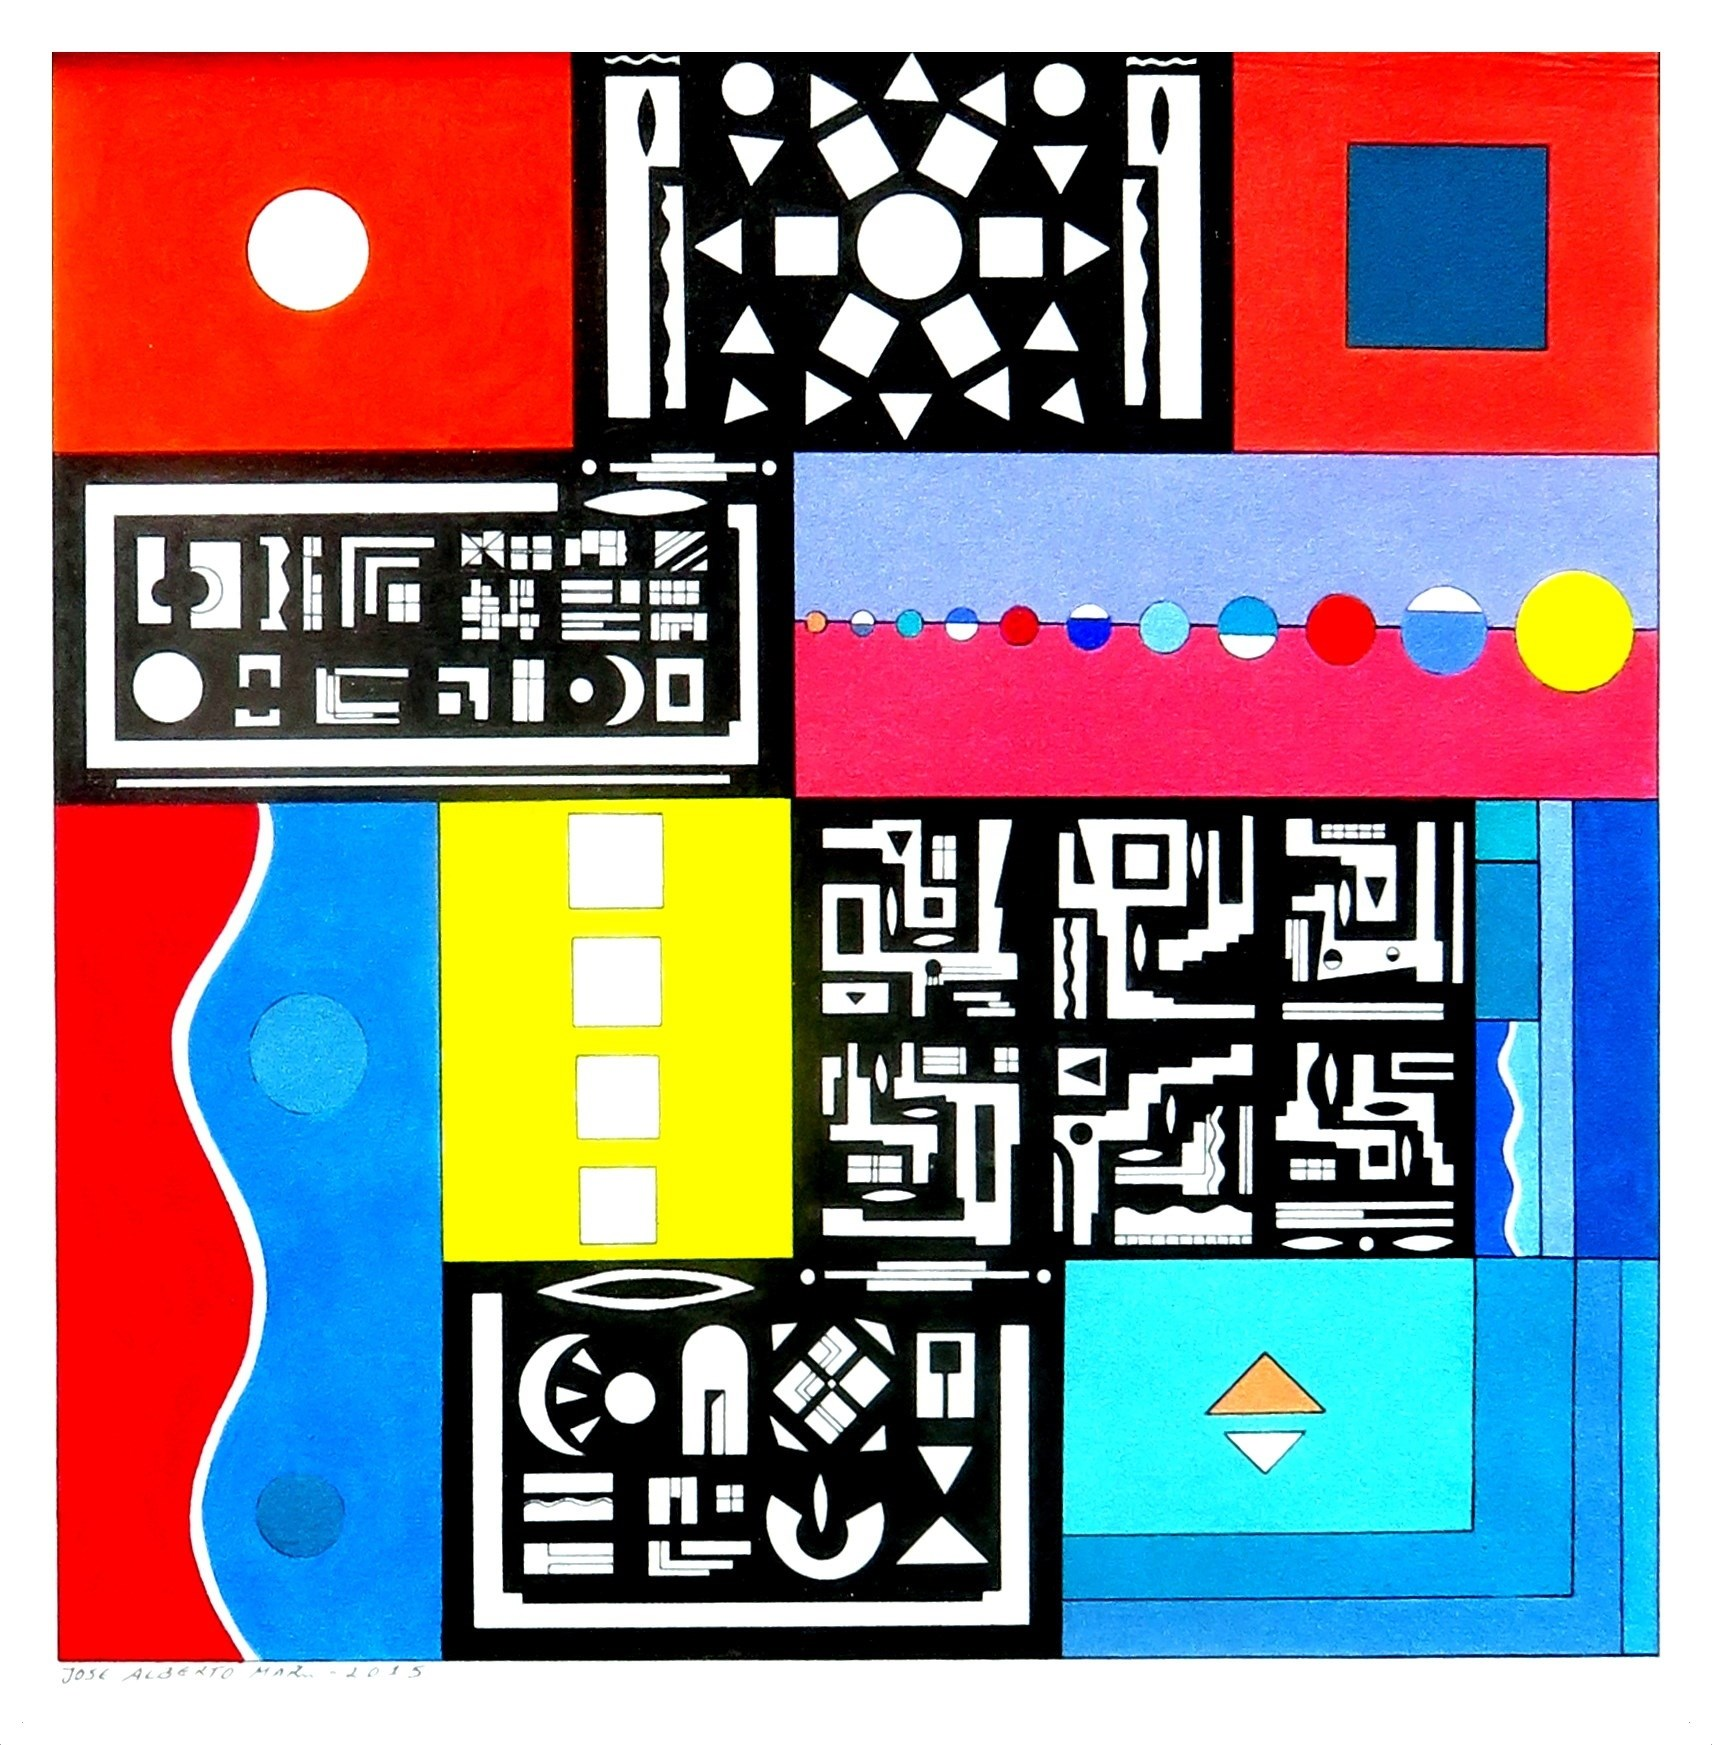 SERIES: SMALL WISDOMS (Nº 18). SÉRIE: PEQUENAS SABEDORIAS (Nº18), original Geometric Acrylic Painting by José Alberto Mar